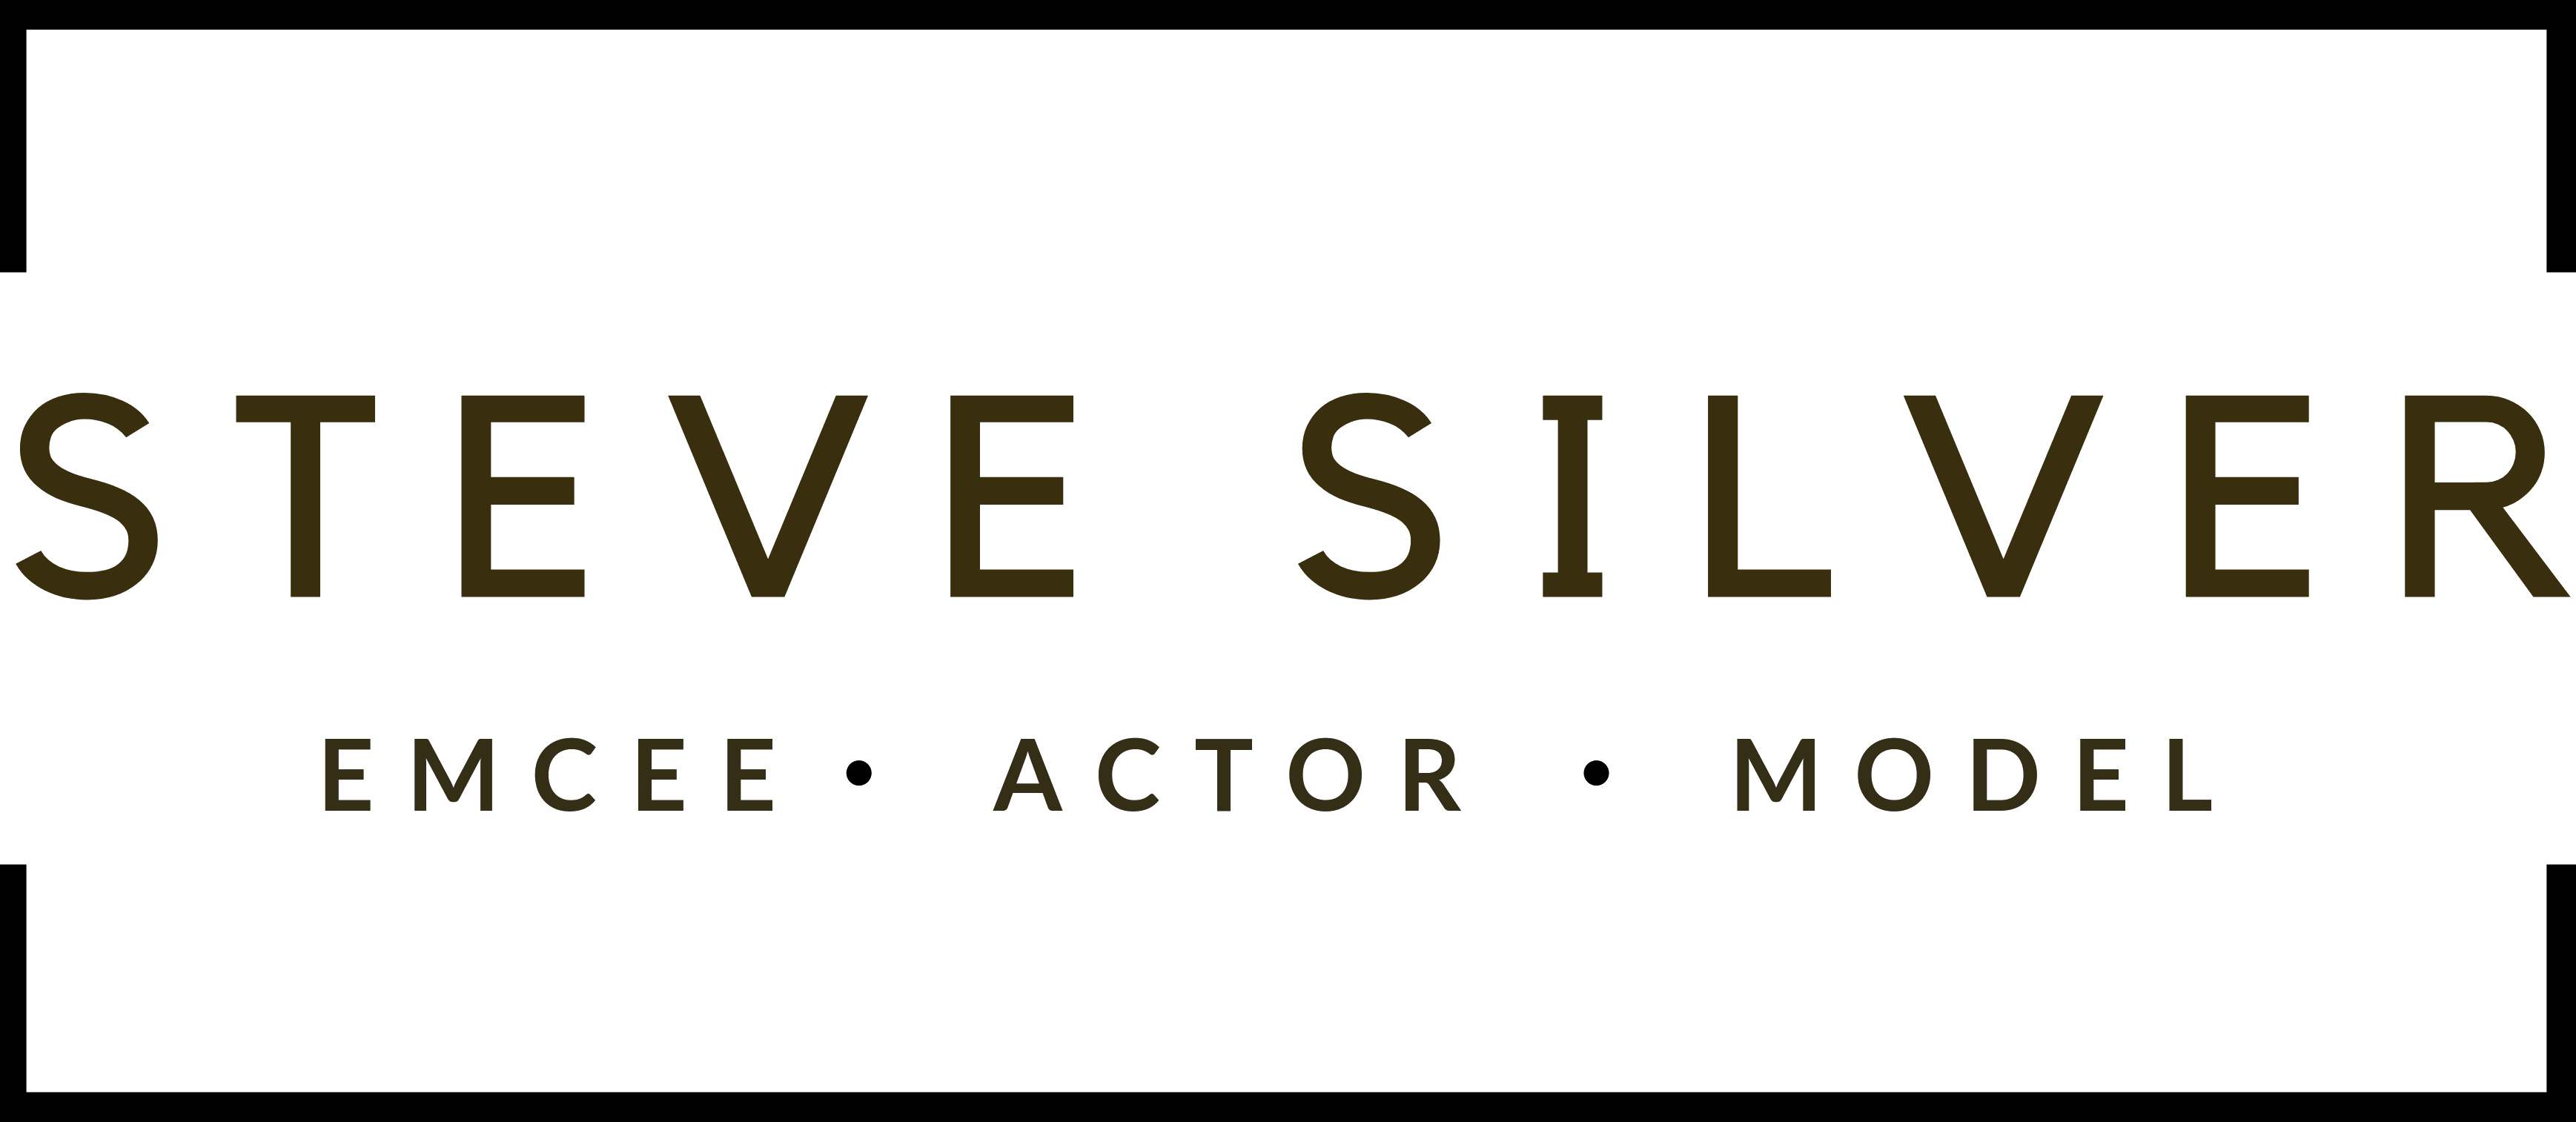 Steve B. Silver - EMCEE • ACTOR • MODEL